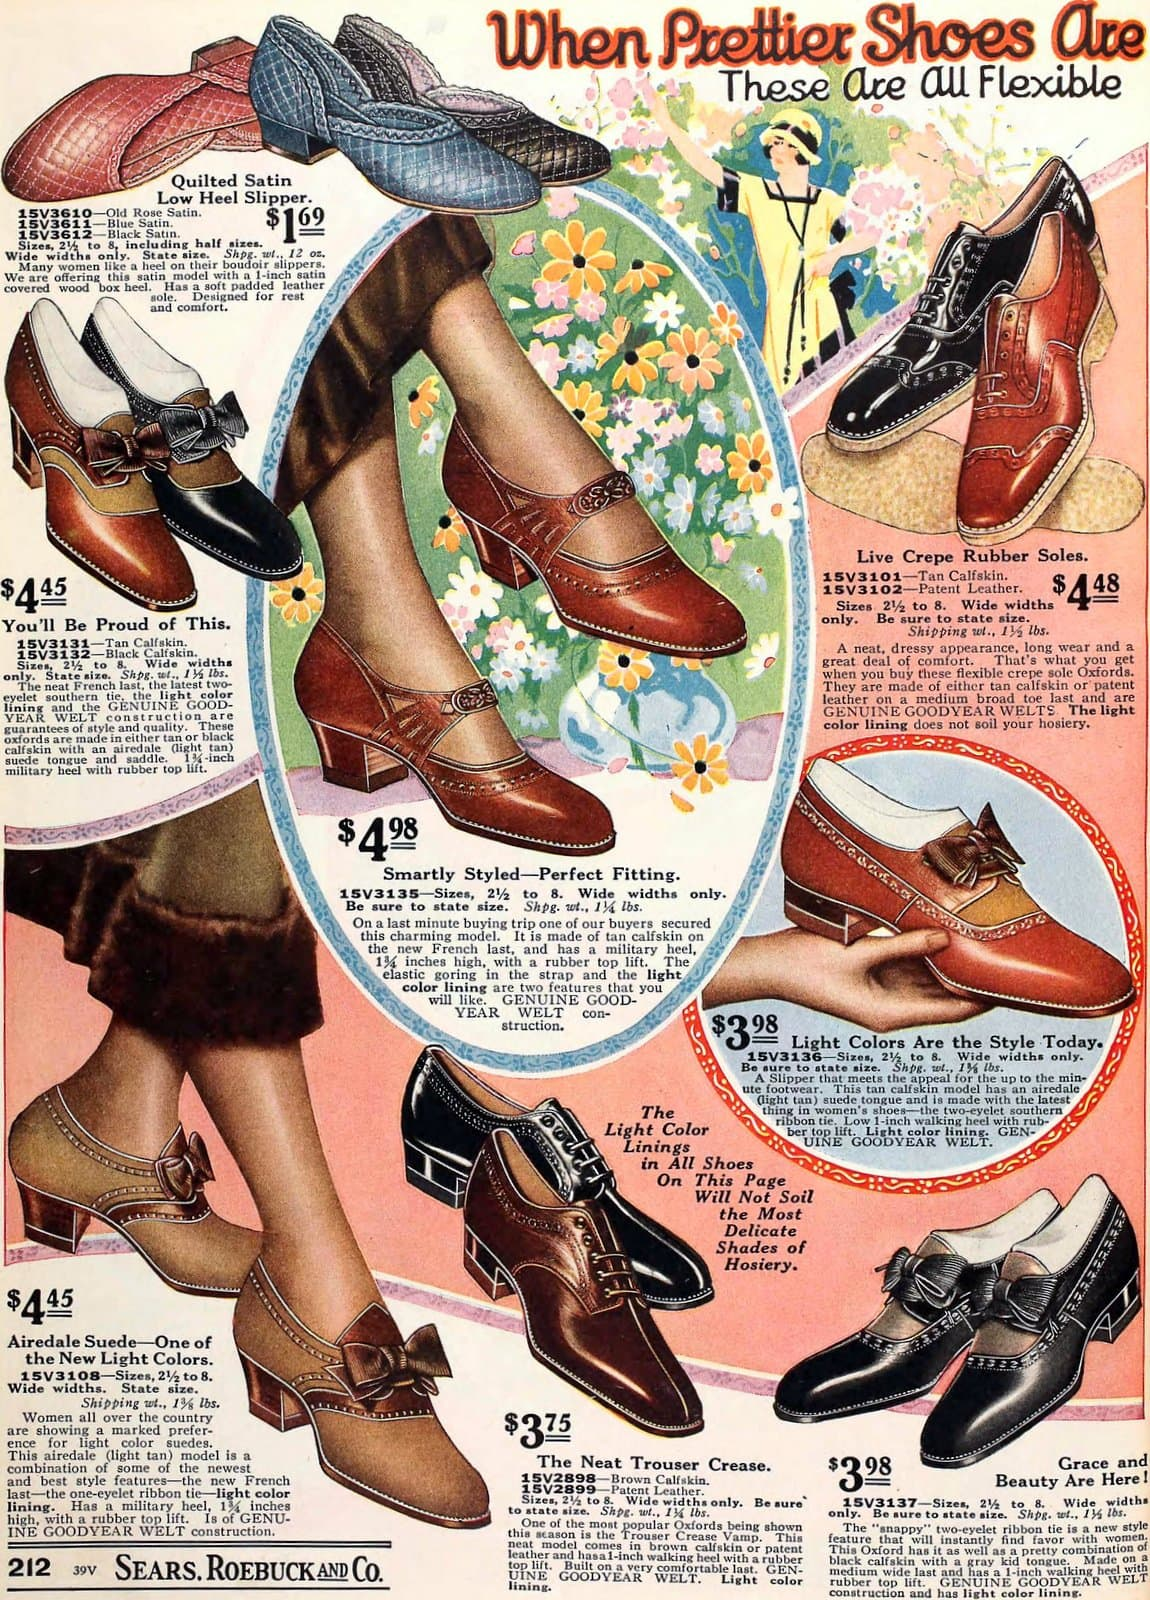 Vintage 1920s shoes for women from 1925 (2)